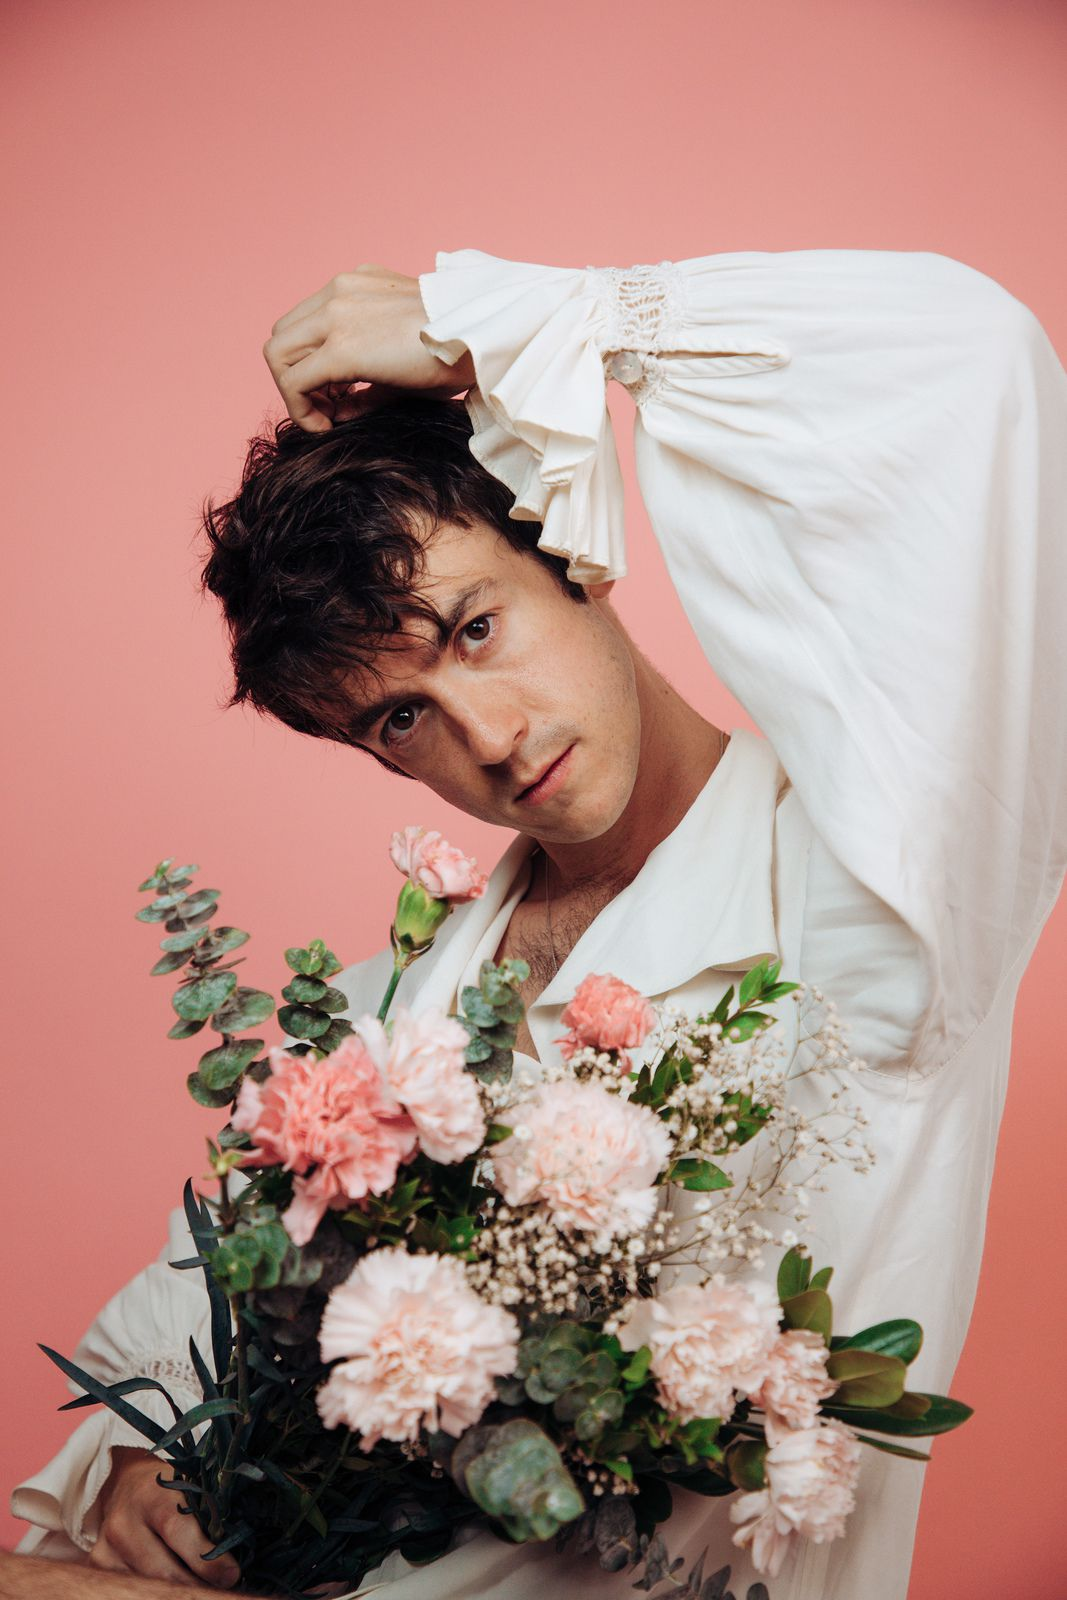 QUEER POP ACT PAT REILLY SHARES 'ADAMANTINE' | DEBUT EP OUT NOVEMBER 13